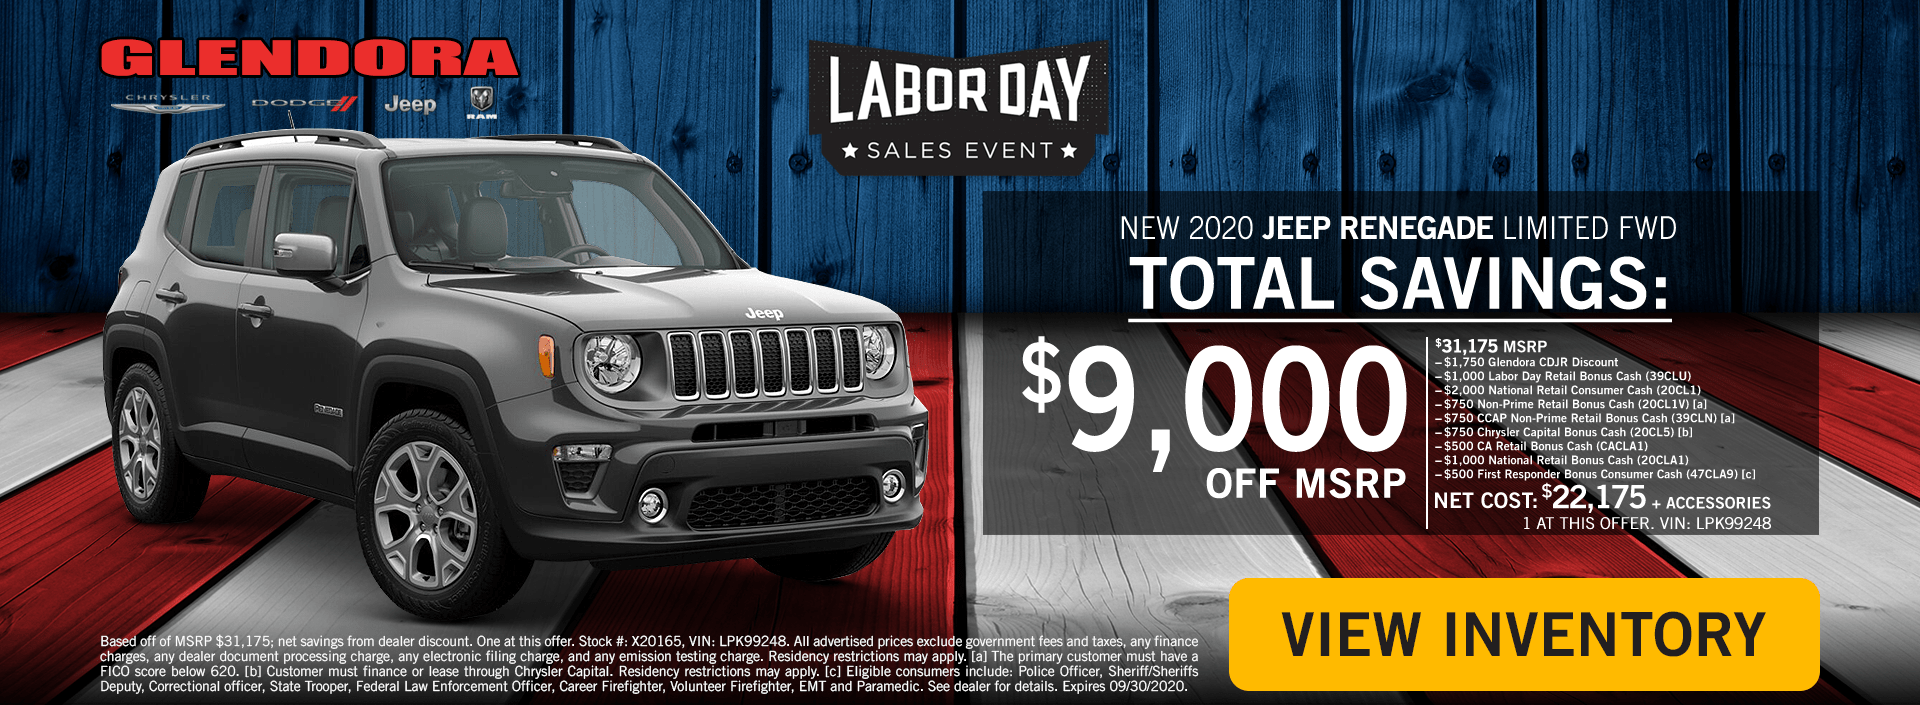 Labor Day Deals - Jeep Renegade